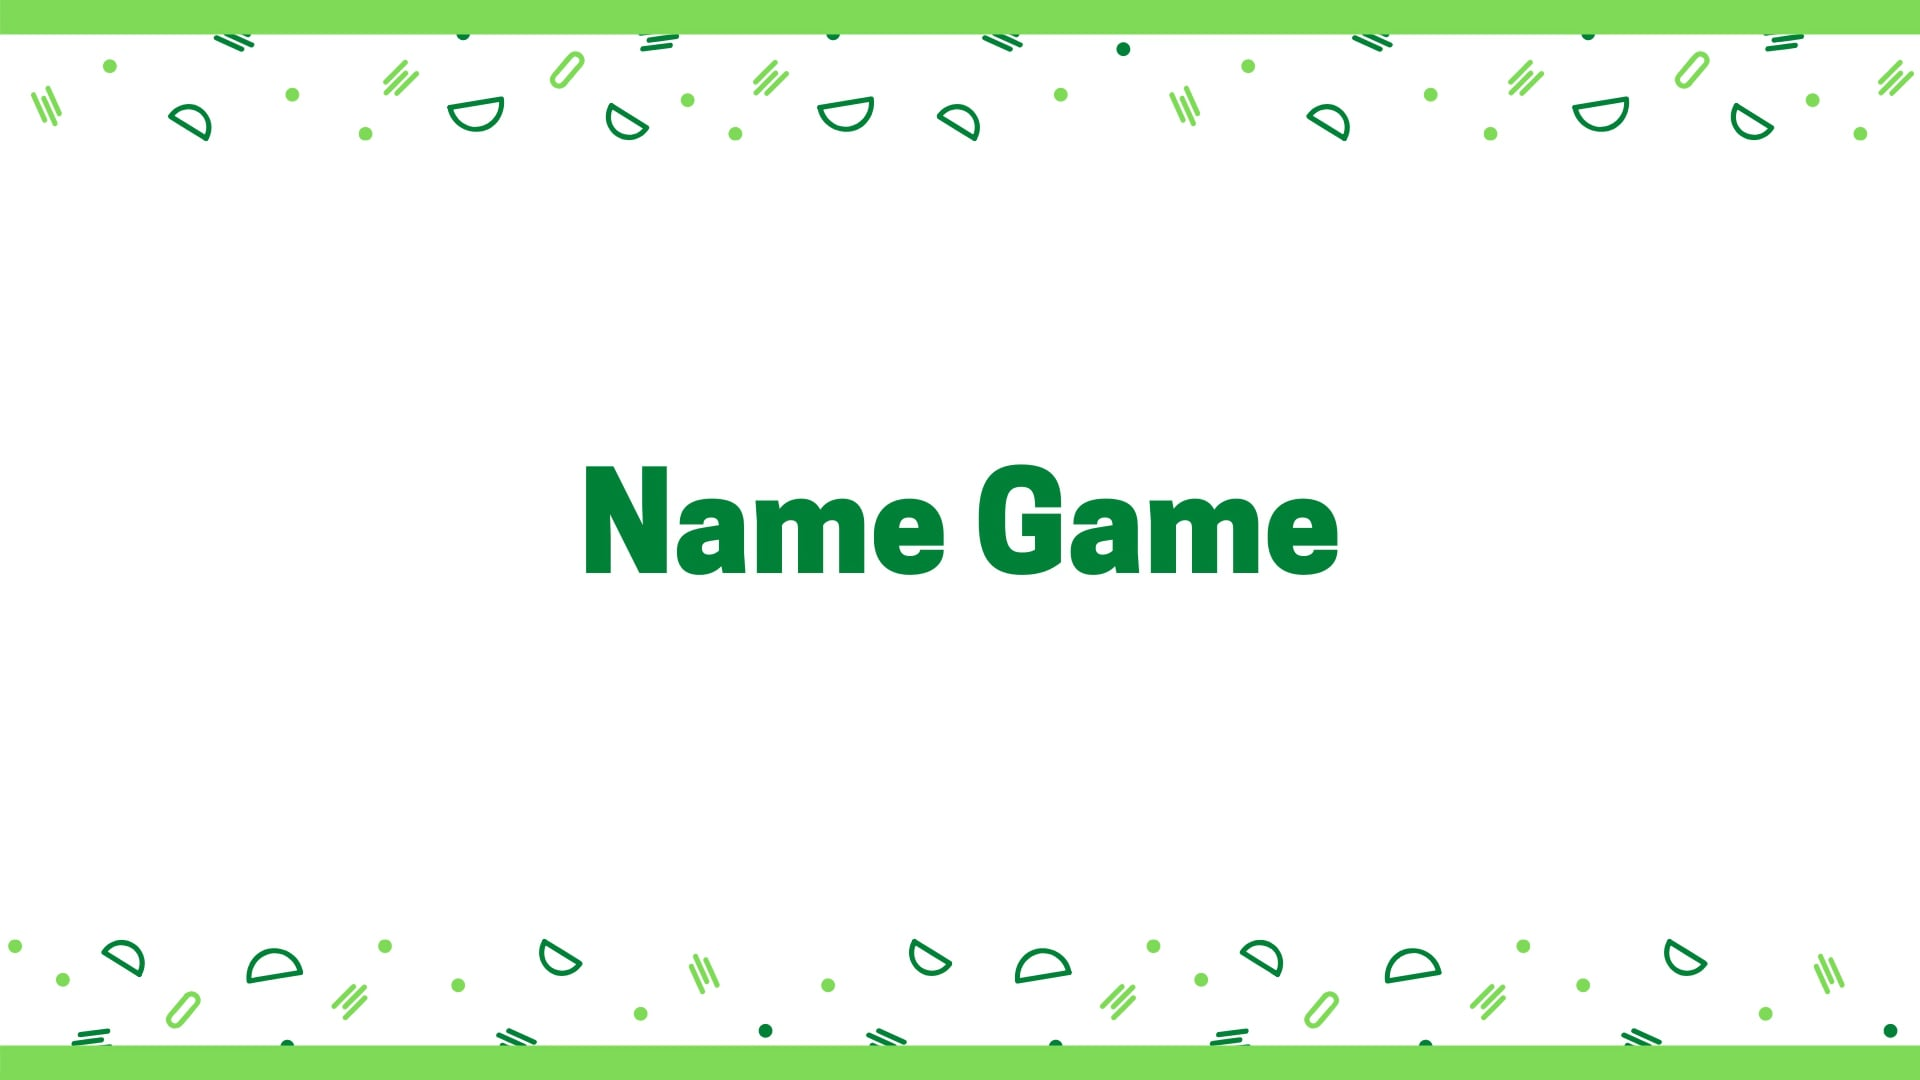 New Digital Ideas: Name Game